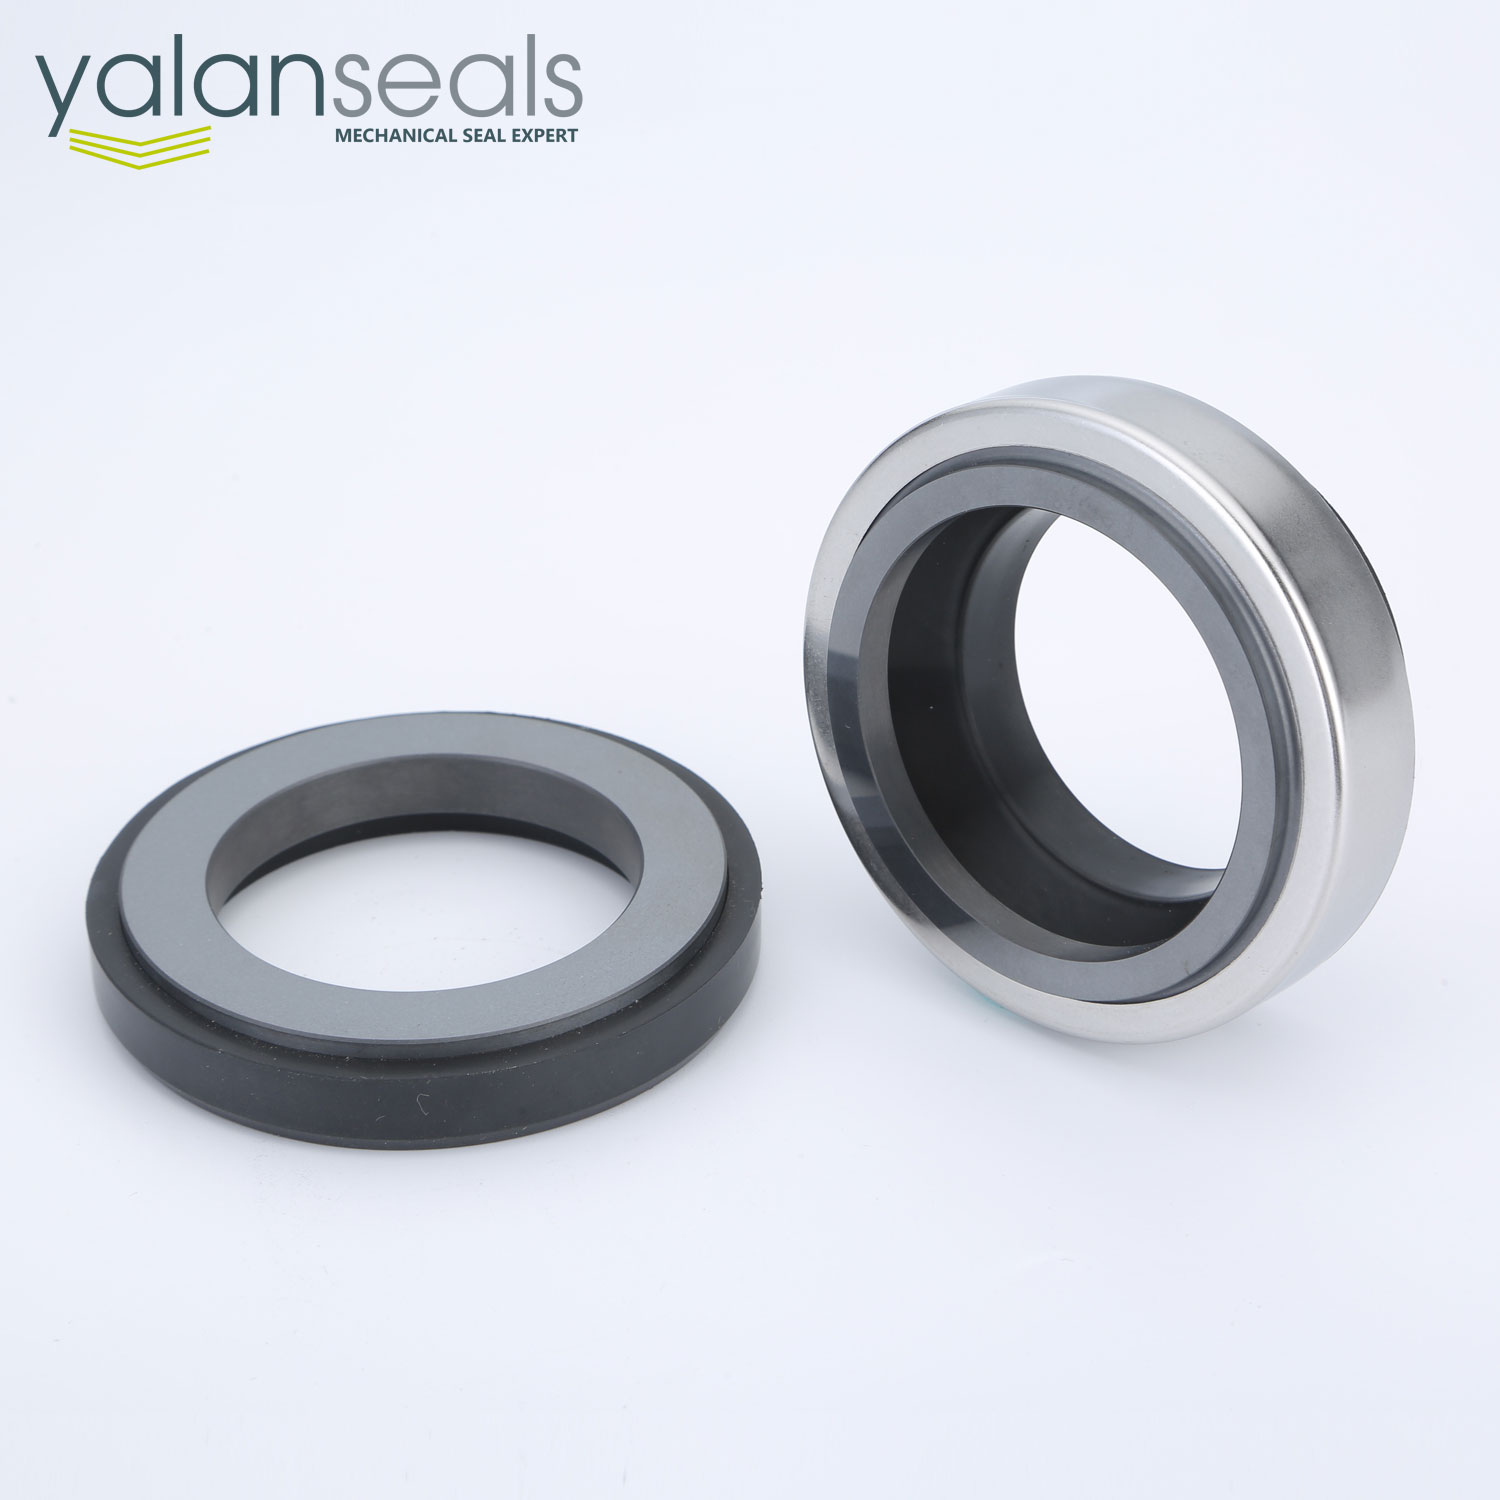 301 (BT-AR) Mechanical Seal for Piping Pumps and Clean Water Pumps